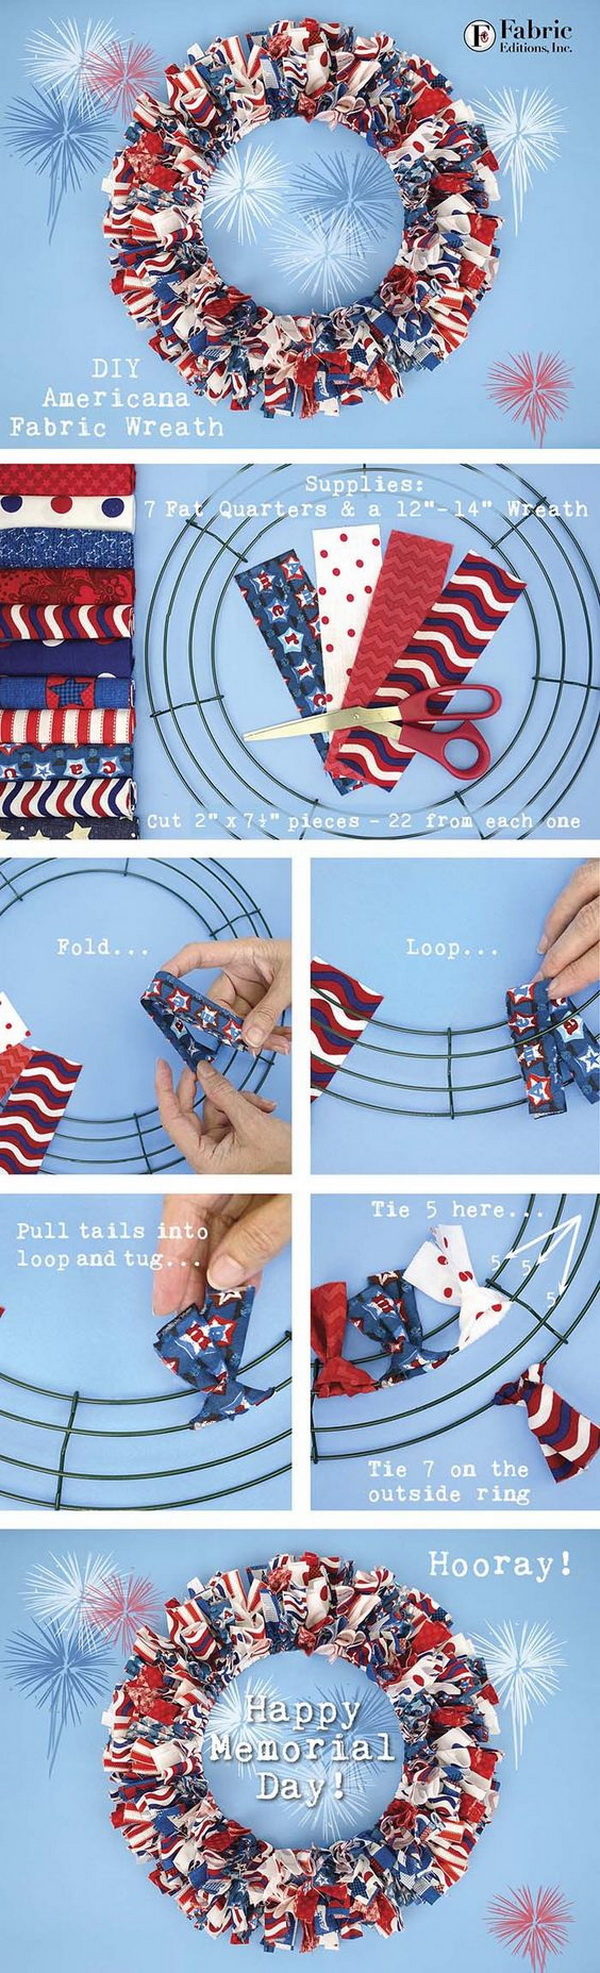 DIY 4th of July Decorations: Red, White & Blue Fabric Wreath.